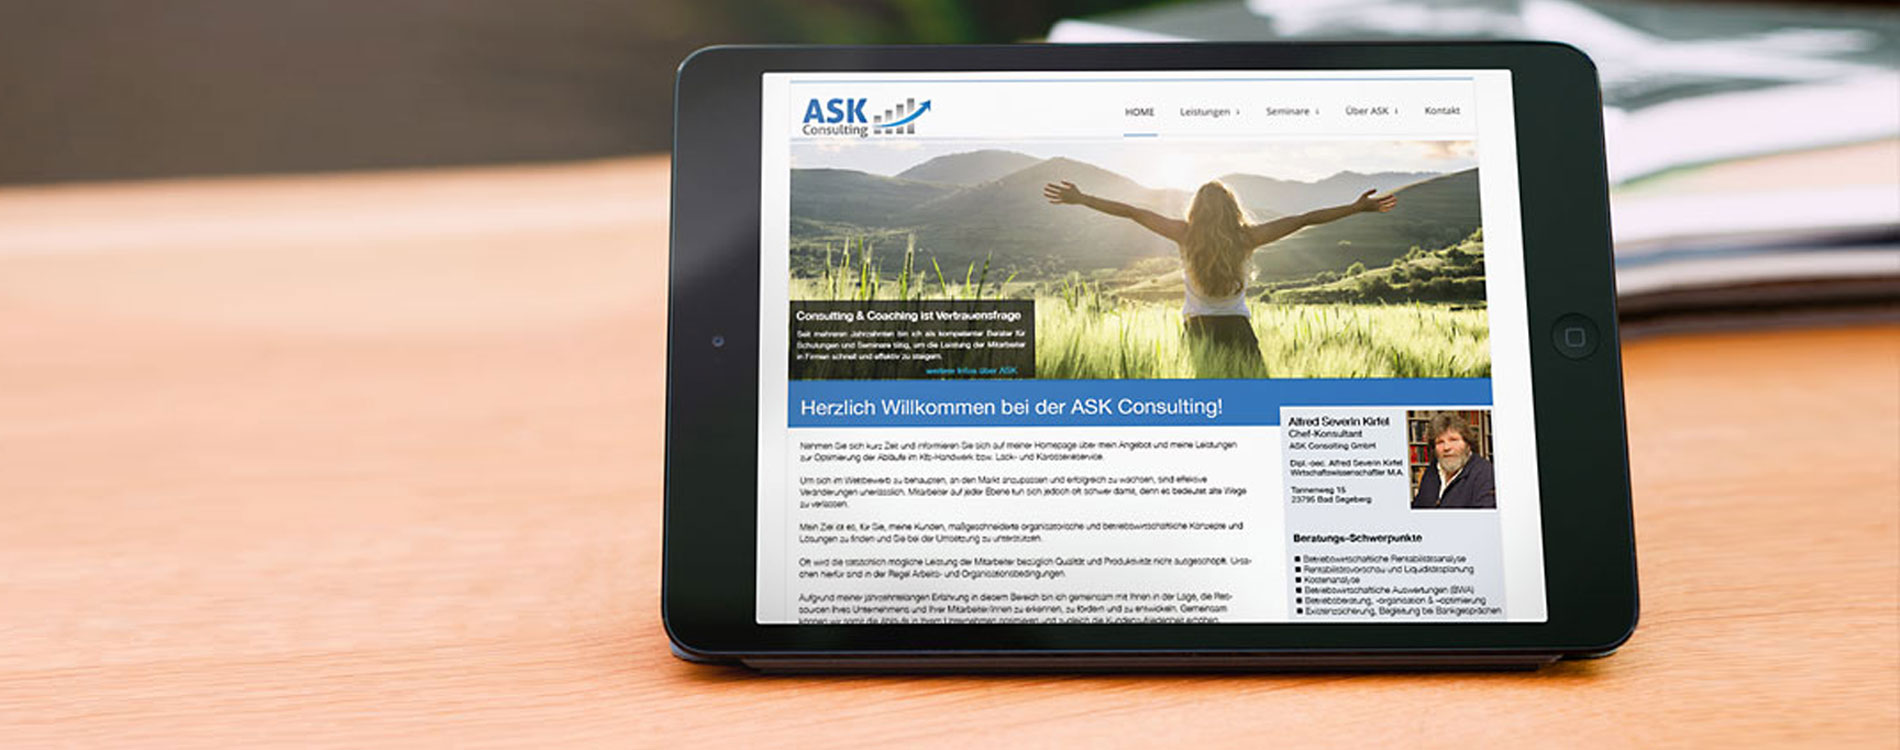 ASK Consulting - 404MEDIA Projekt